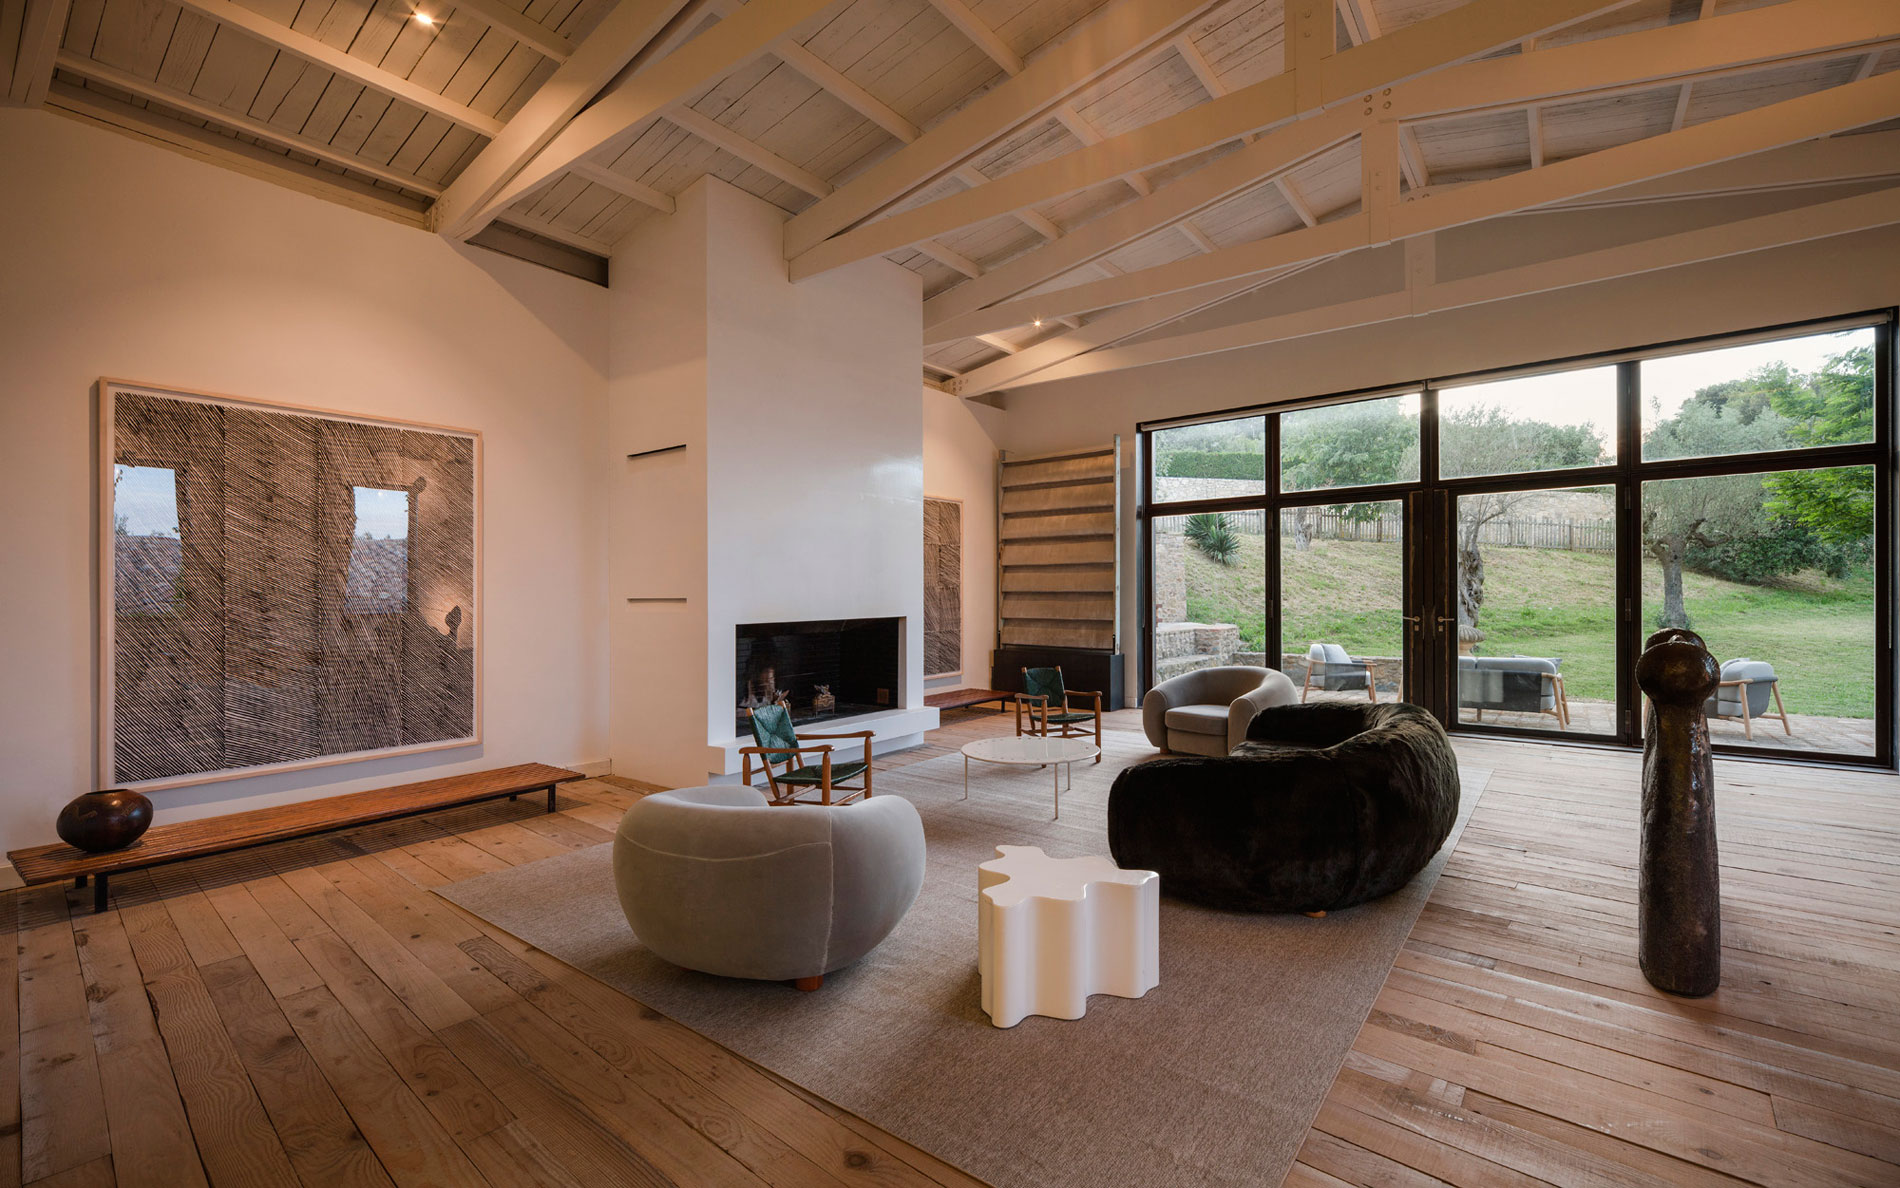 A Rustic Home Full of Art Designed by Francesc Rif Studio